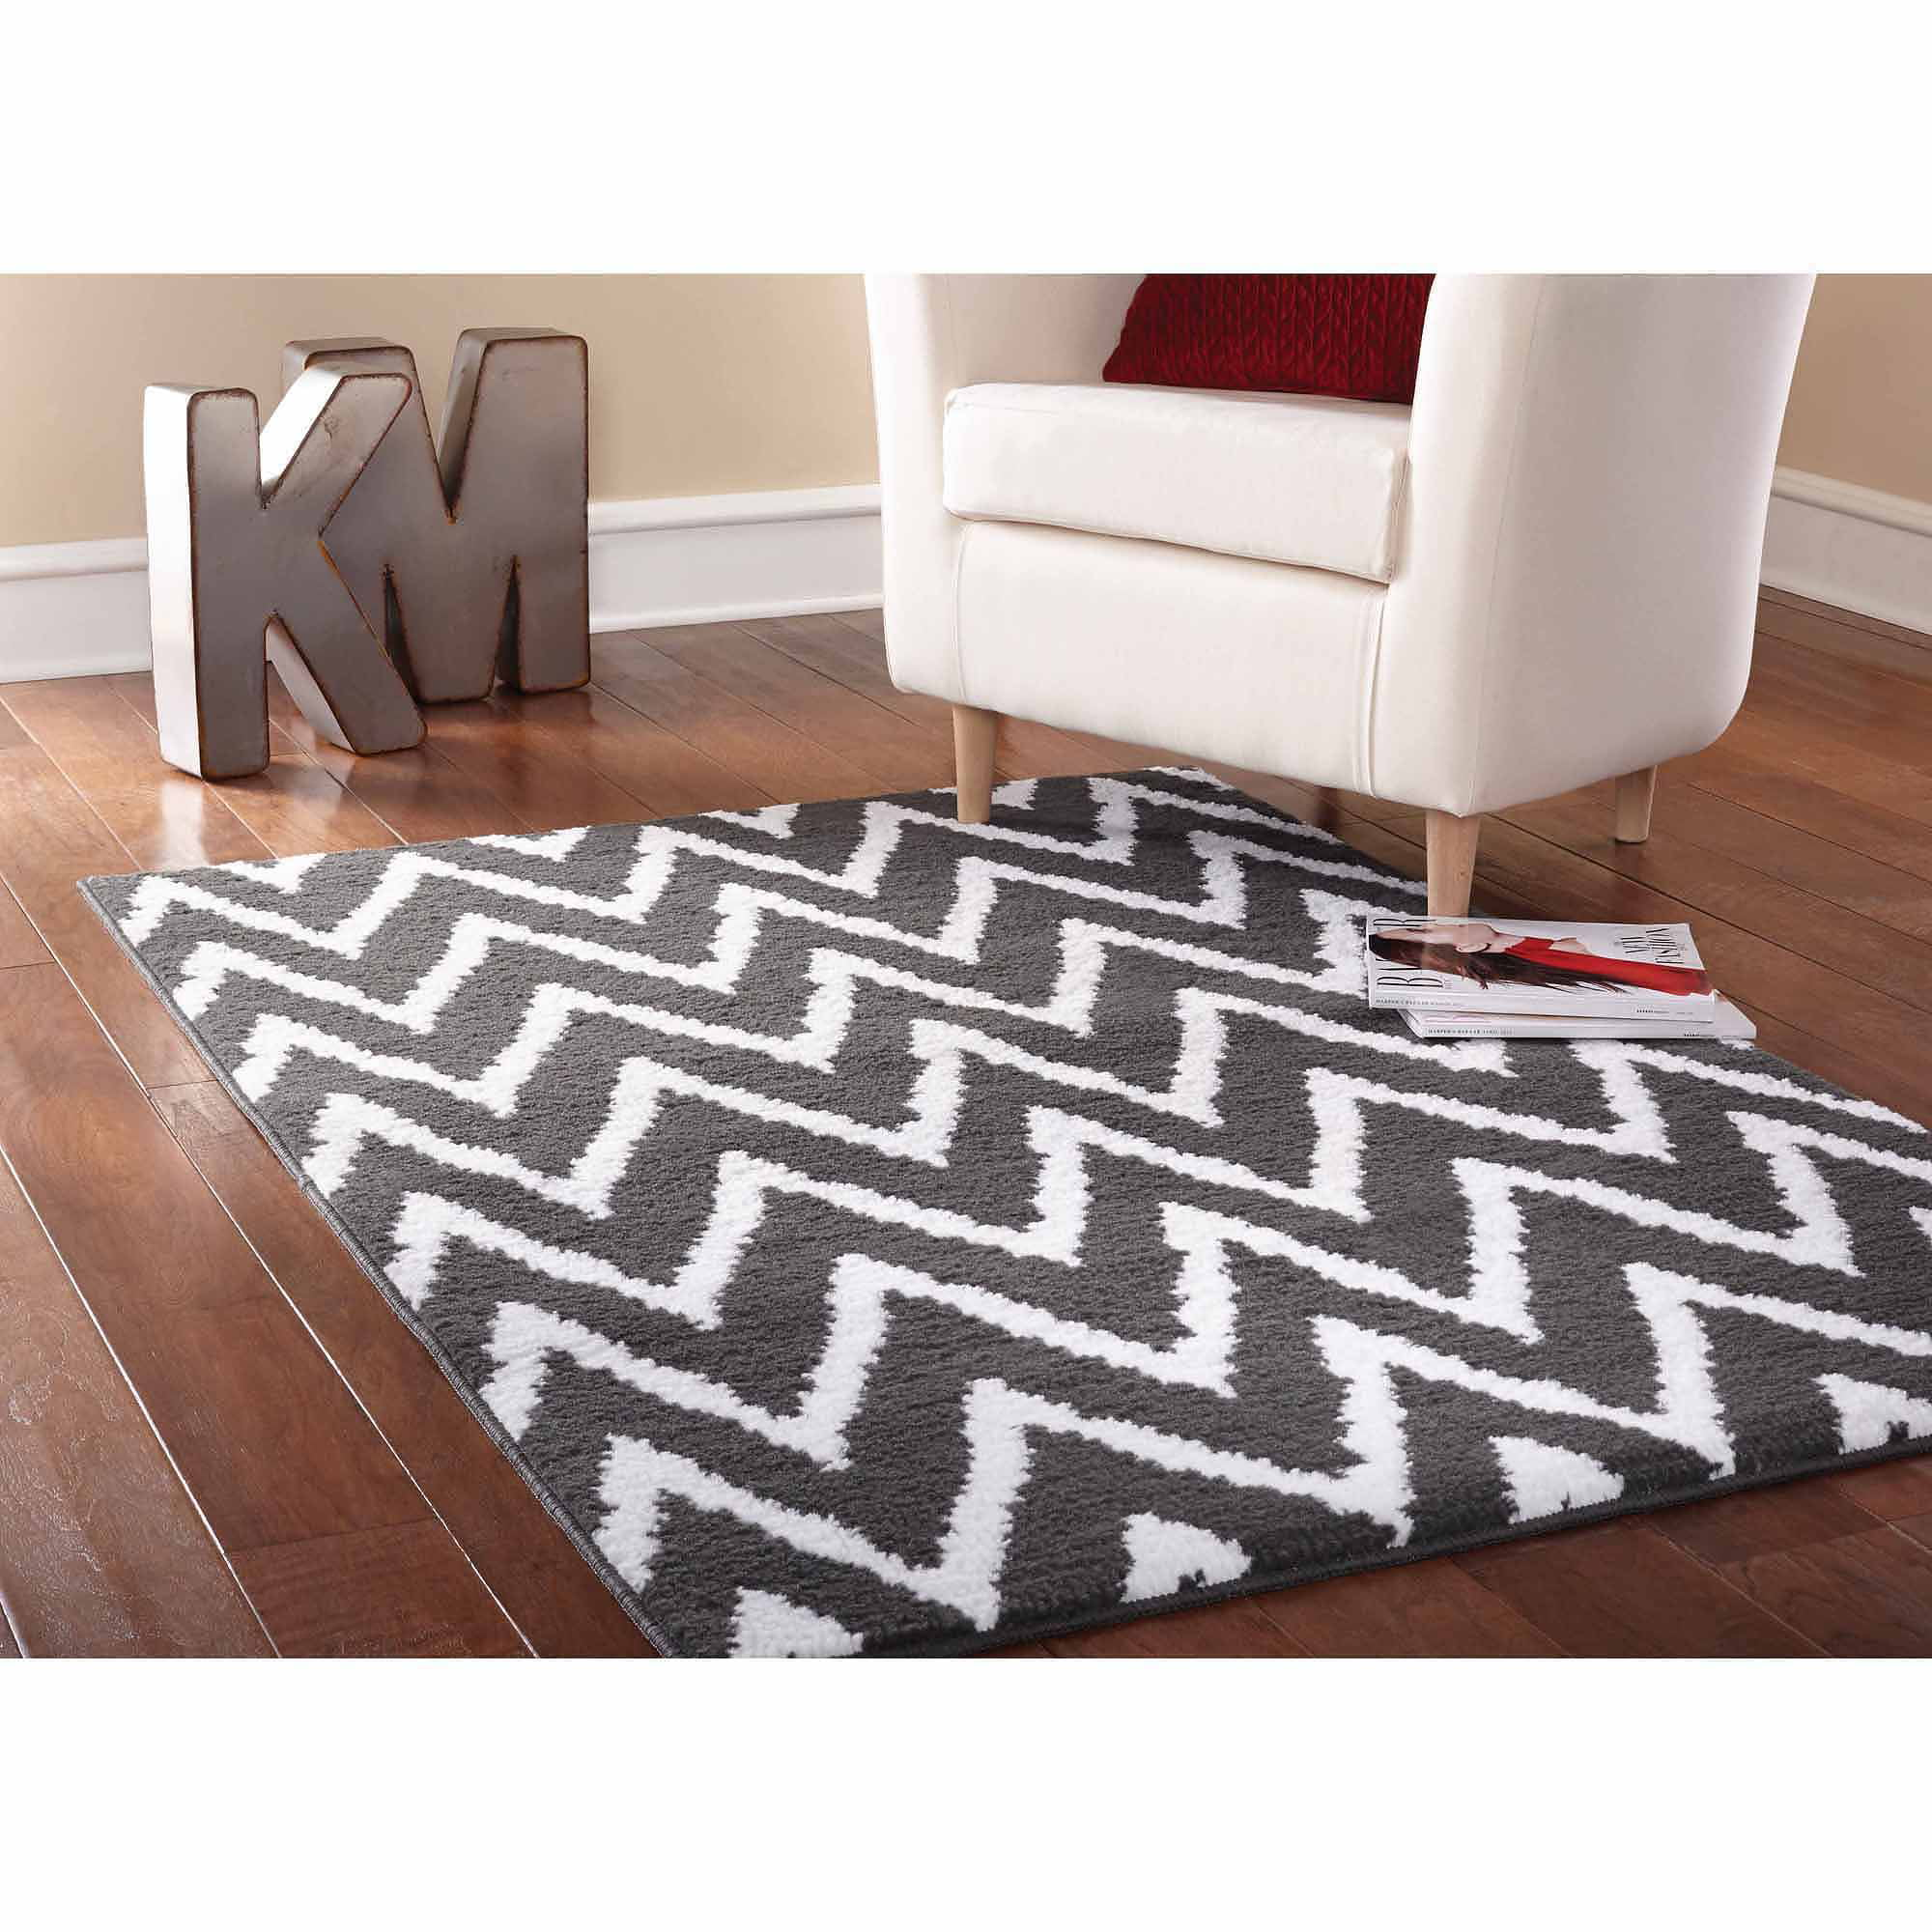 Gray white carpet rug distressed zig zag rugs for kids for Rugs for kids bedrooms